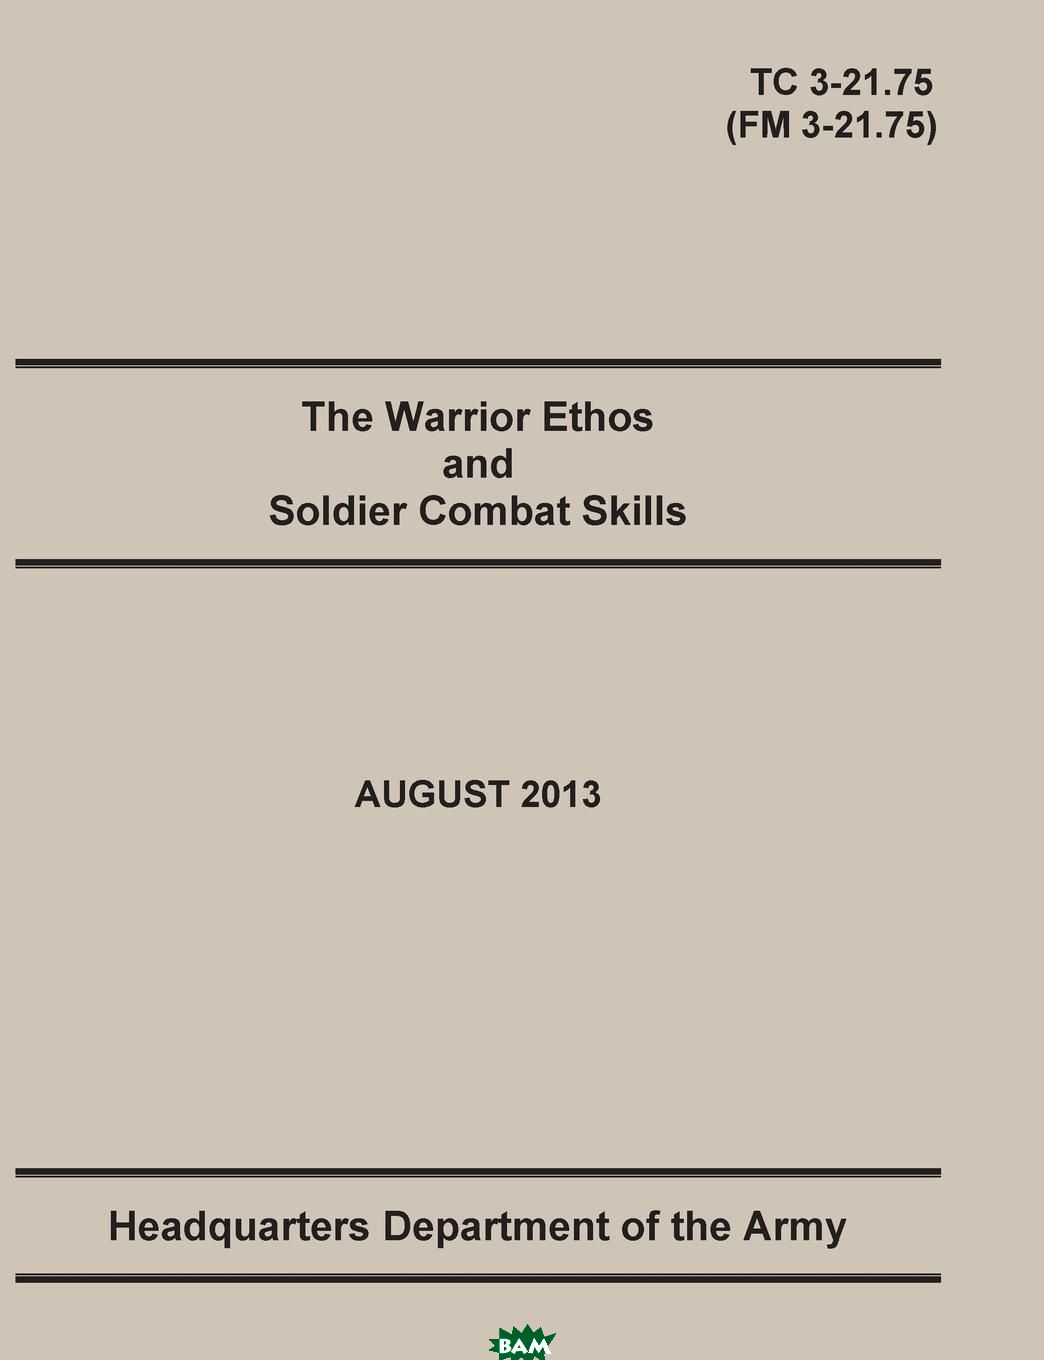 Купить The Warrior Ethos and Soldier Combat Skills. The Official U.S. Army Training Manual. Training Circular TC 3-21.75 (Field Manual FM 3-21.75). August 2013 revision., United States Army, Maneuver Center of Excellence, Department of the Army Headquarters, 9781782665786